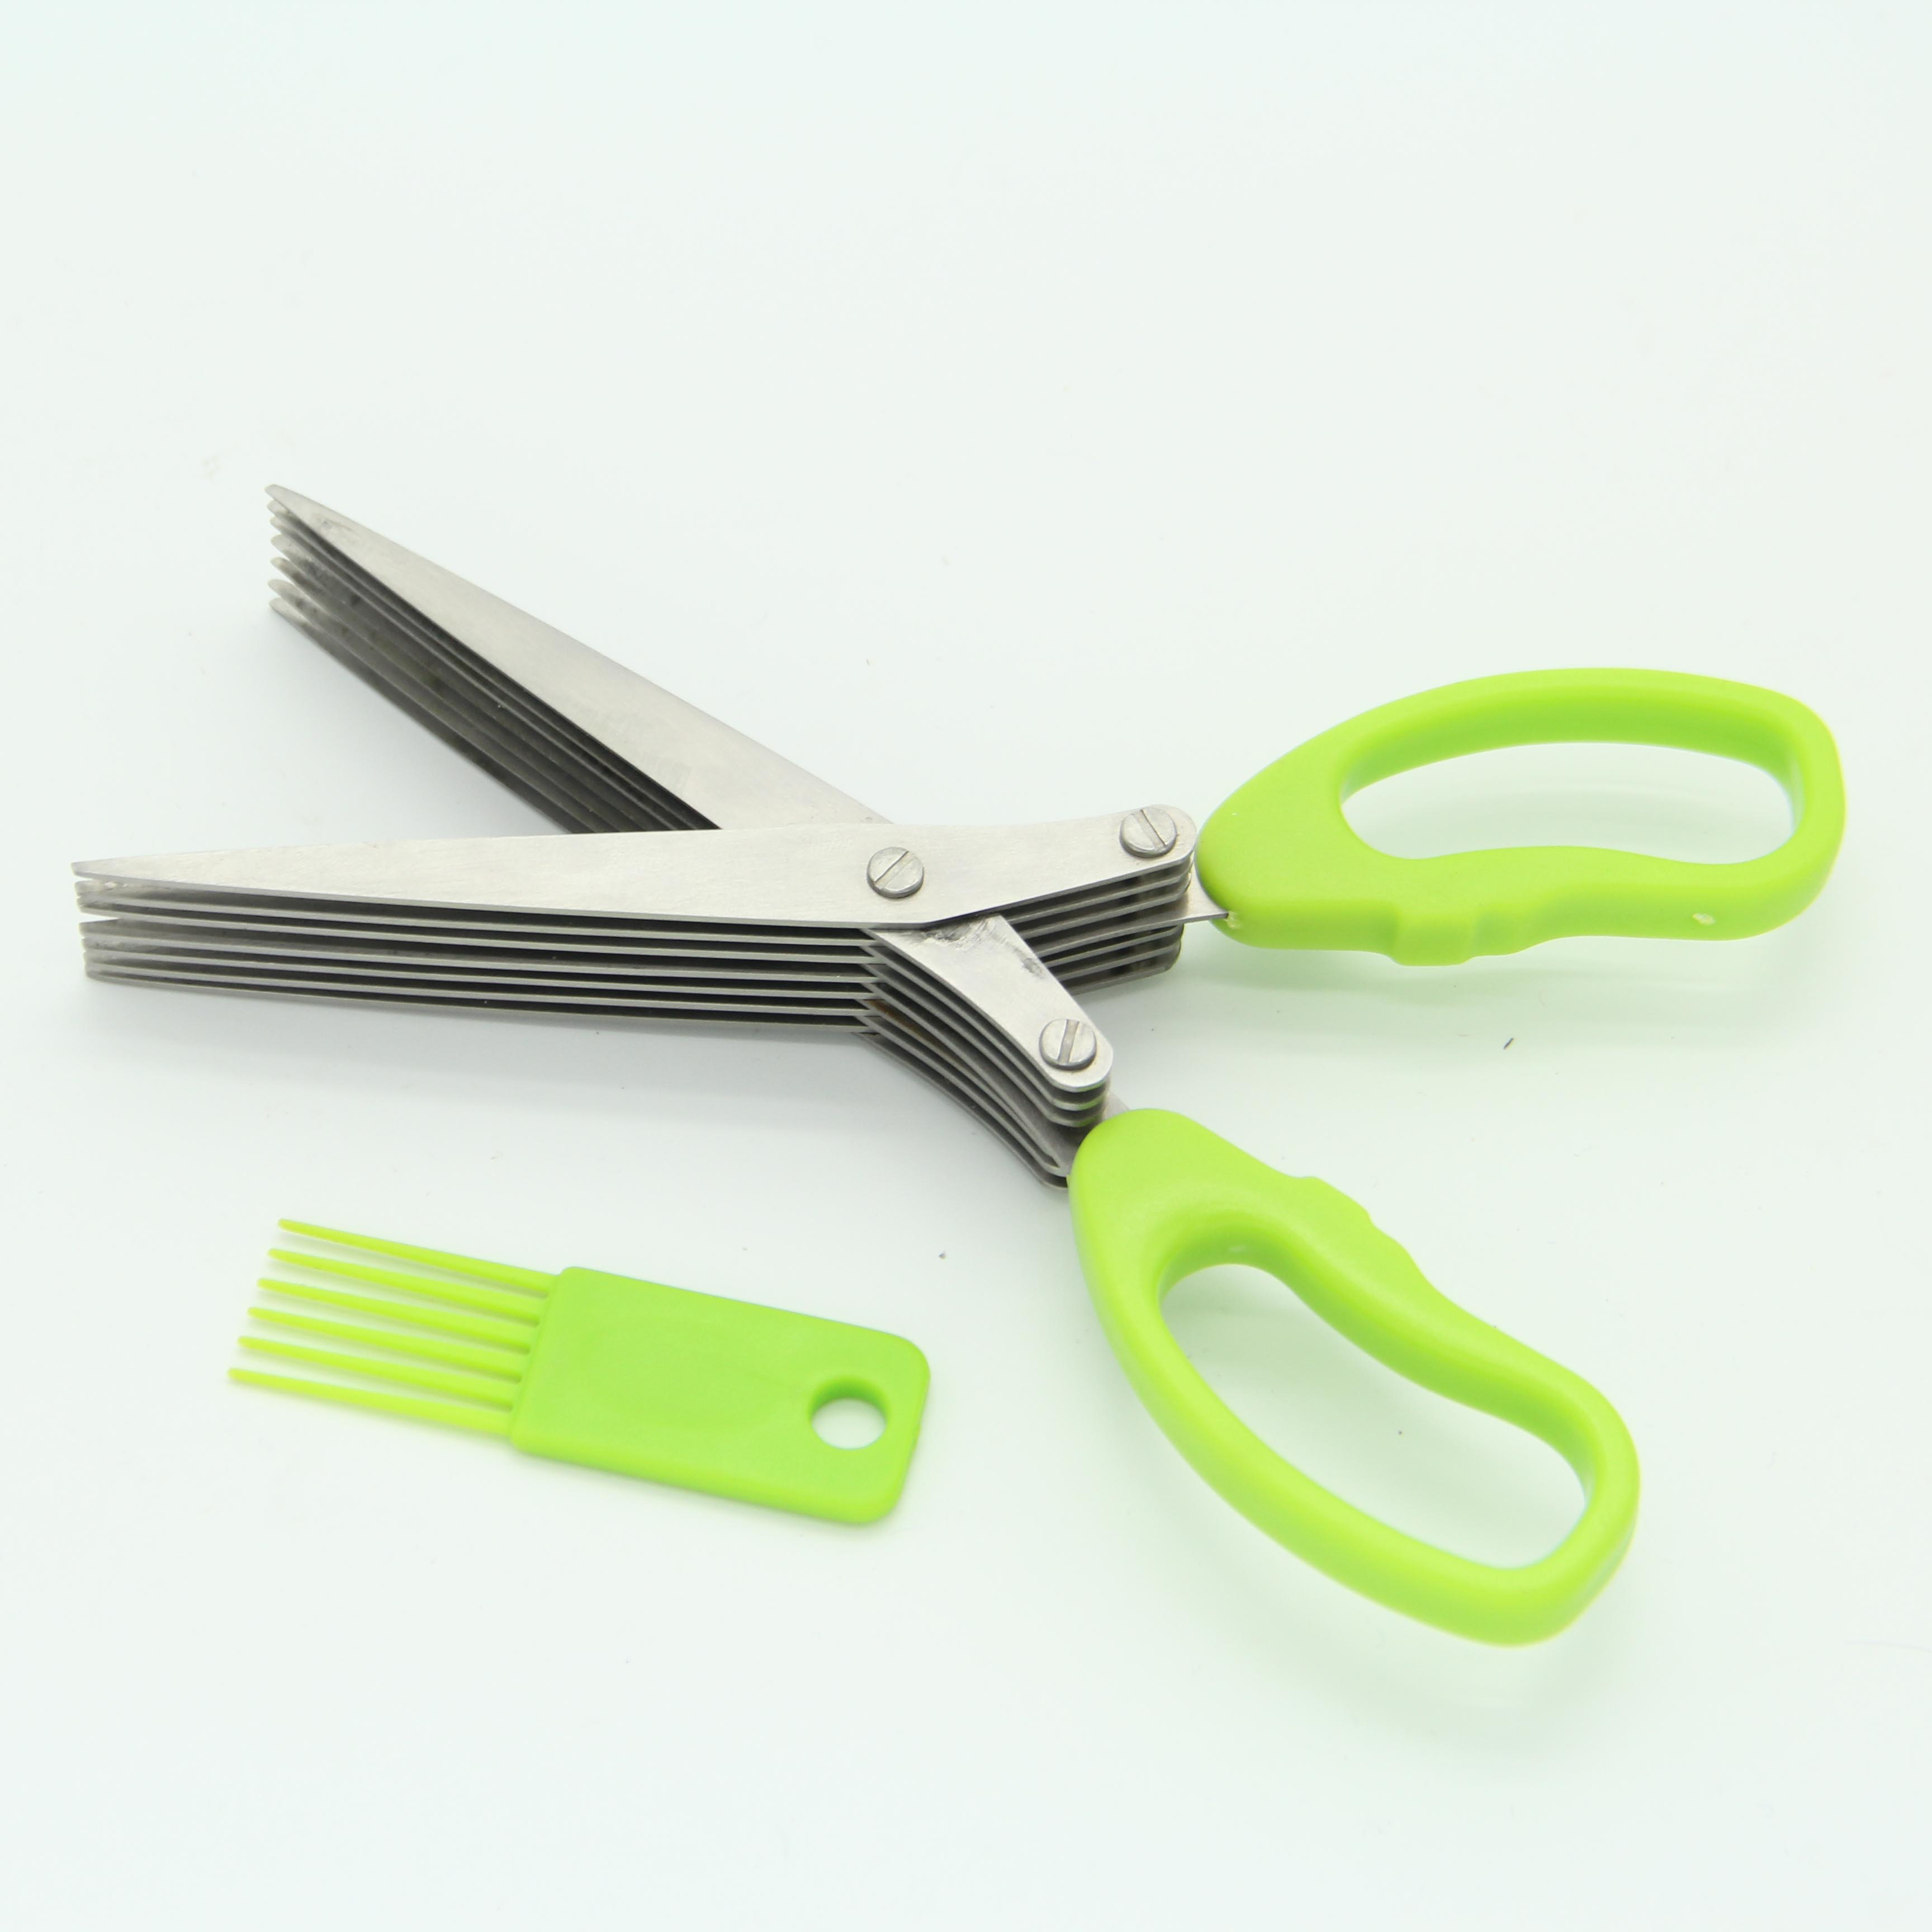 Professional Multi-Function Kitchen Shear Herb Scissors Set 7 Blades With Cleaning Comb And Cover